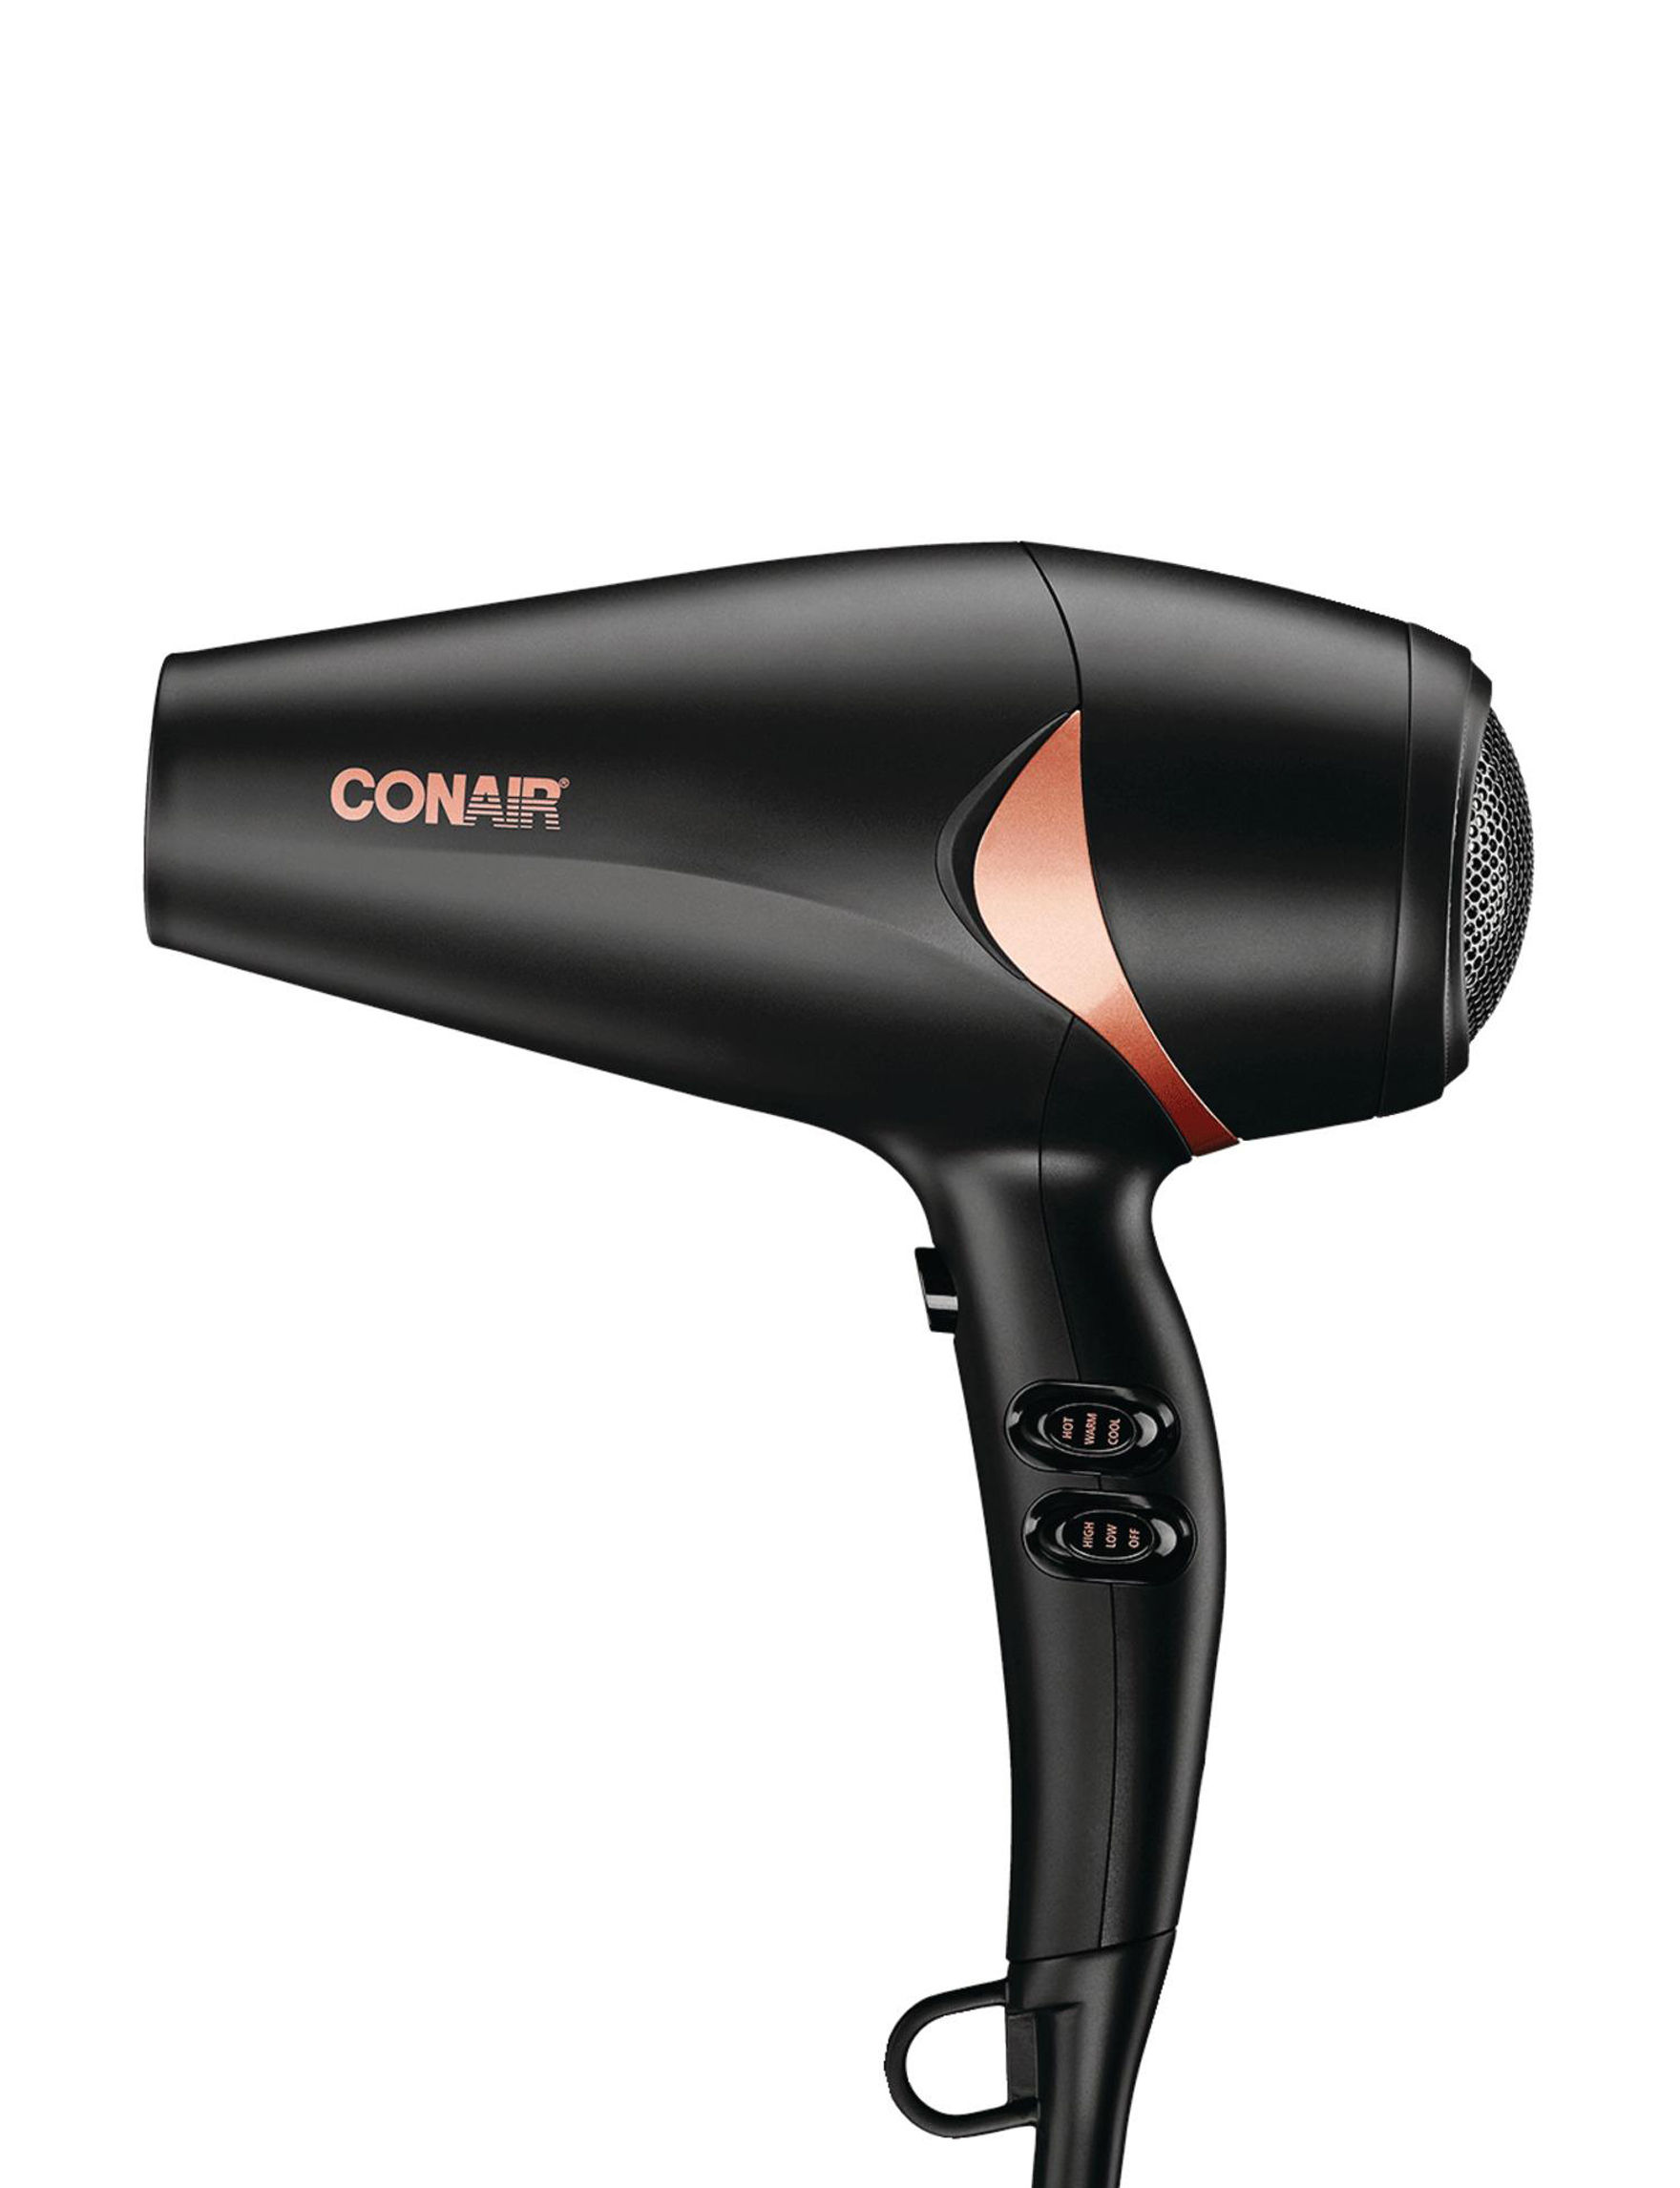 Conair Black Hairstyling Tools Tools & Brushes Bath Accessories